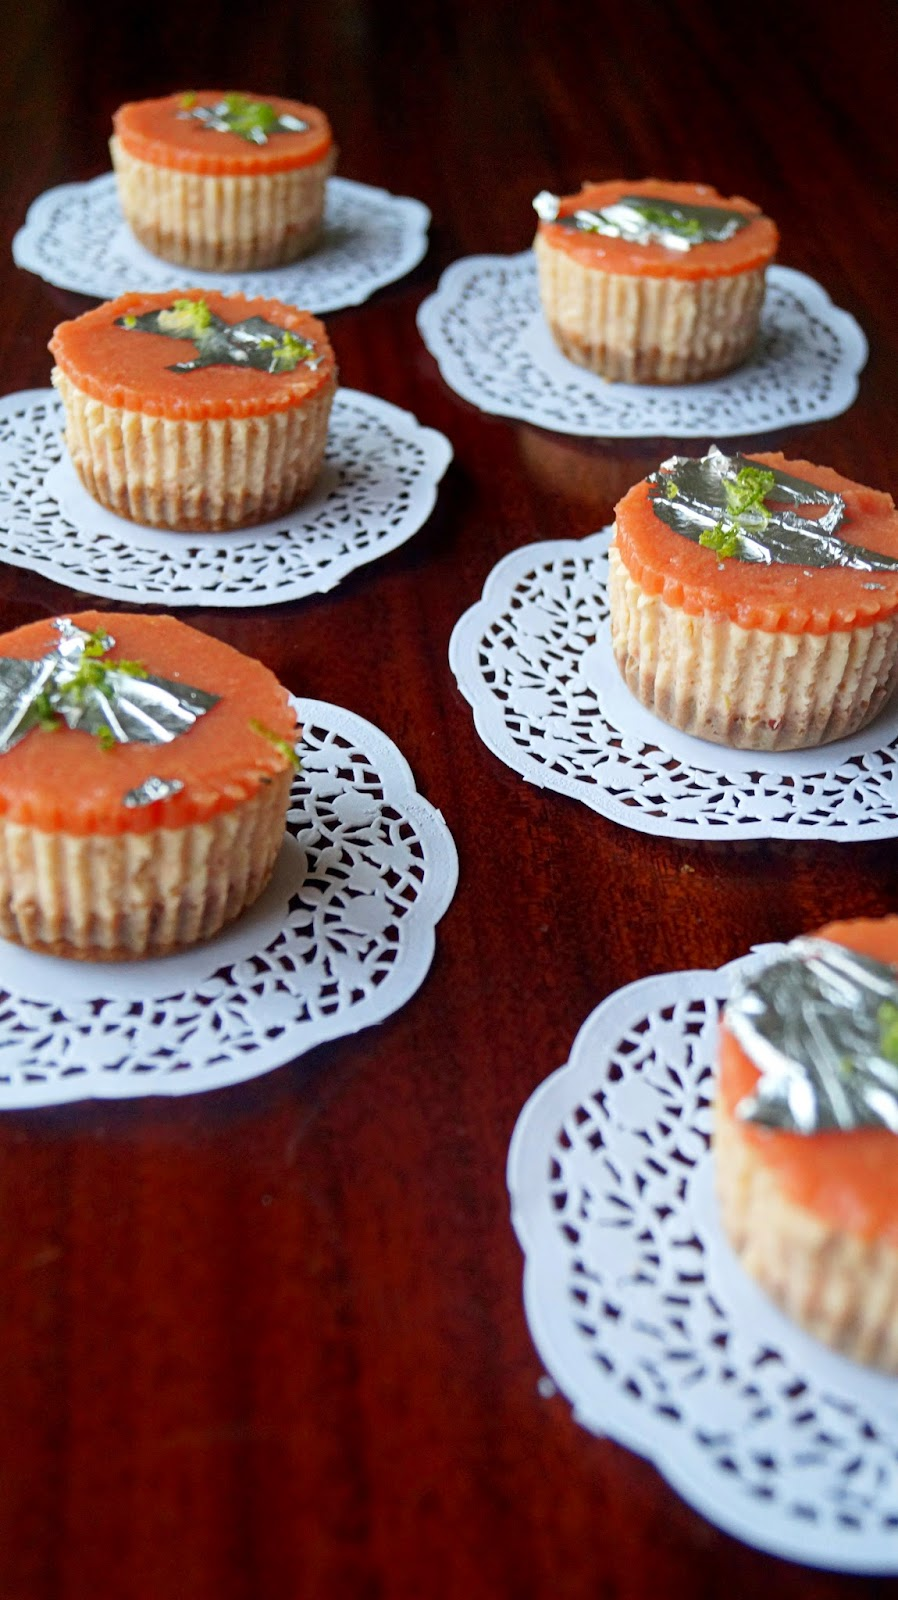 http://cupcakeluvs.blogspot.dk/2015/03/guava-lime-cheesecake.html